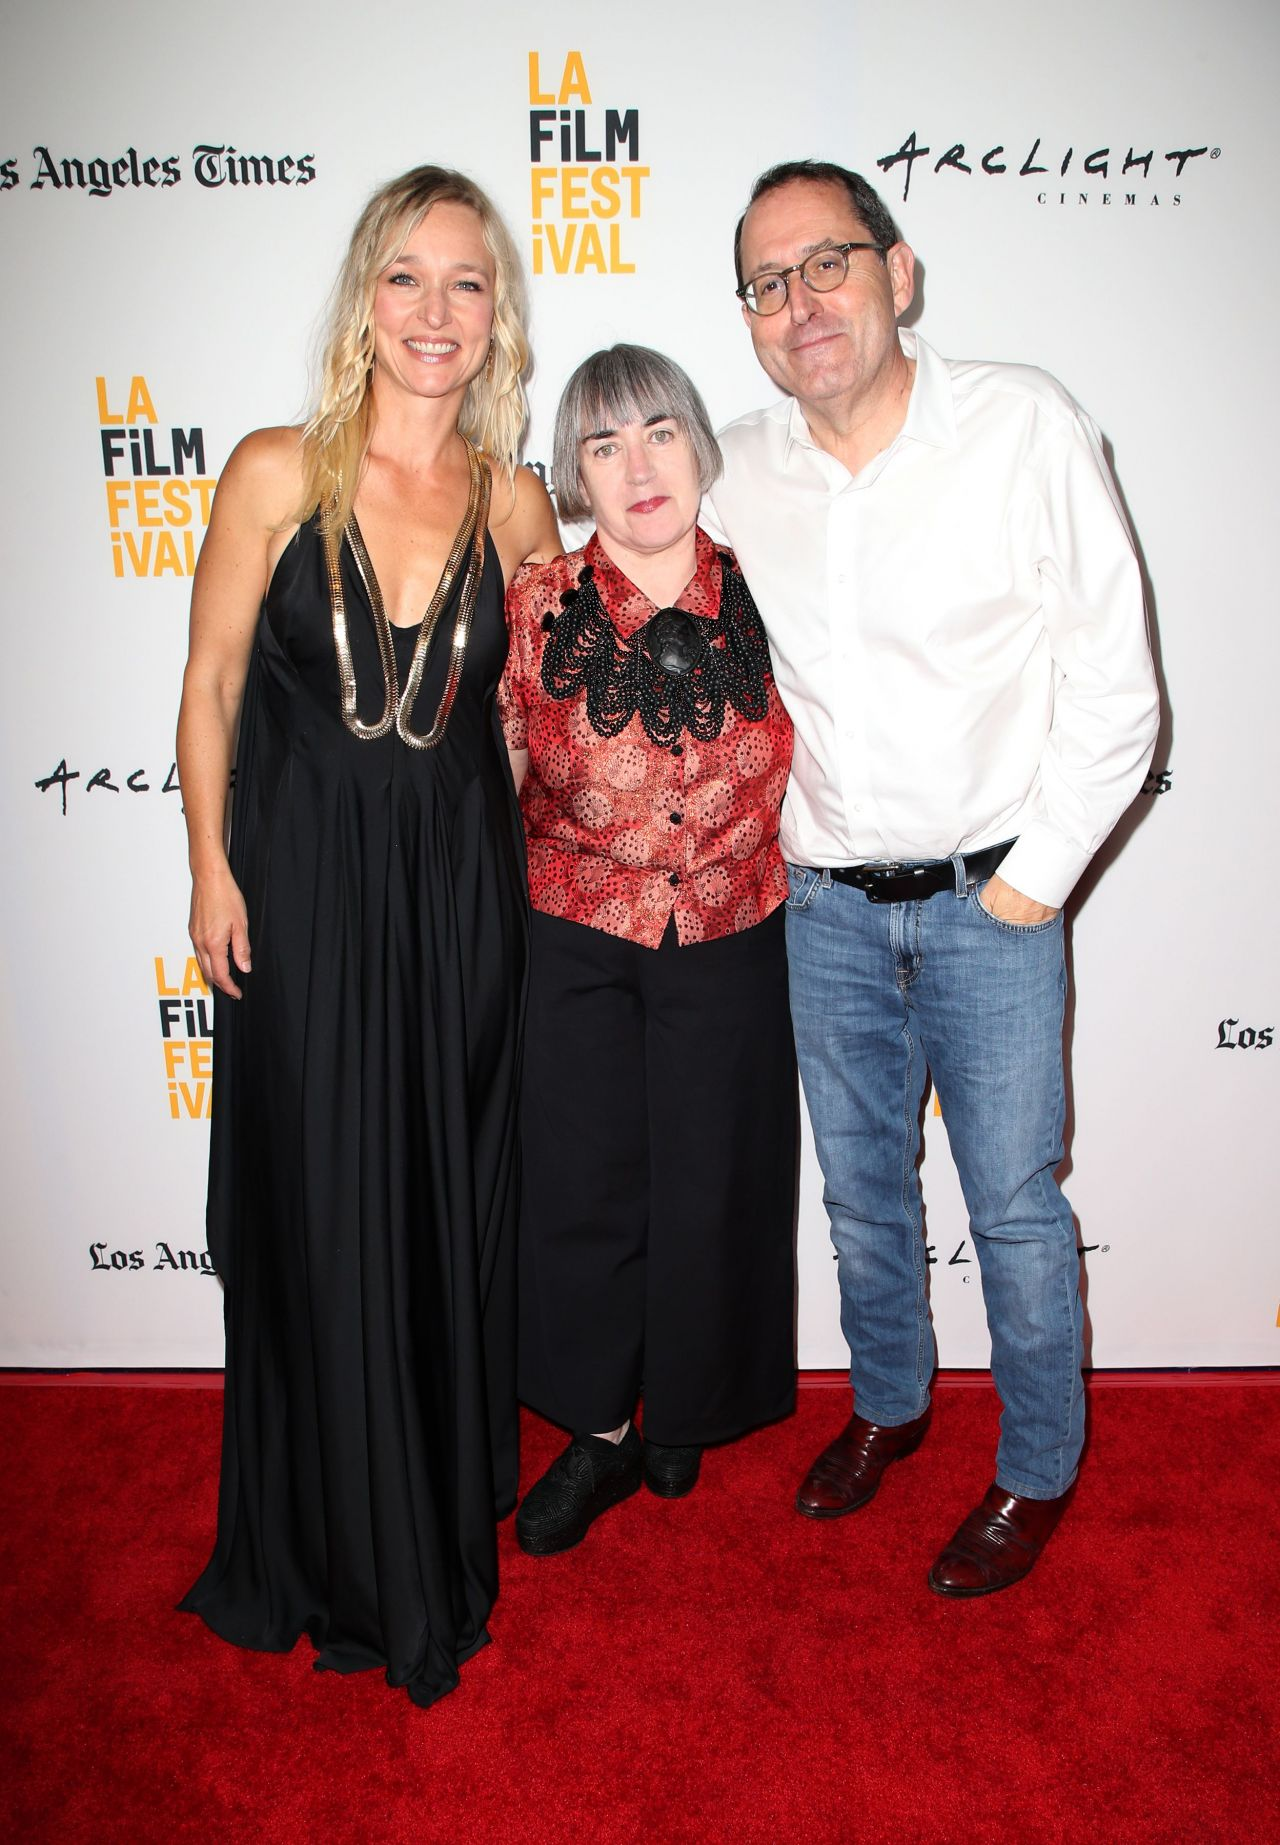 Morgan weed becks premiere at los angeles film festival new images